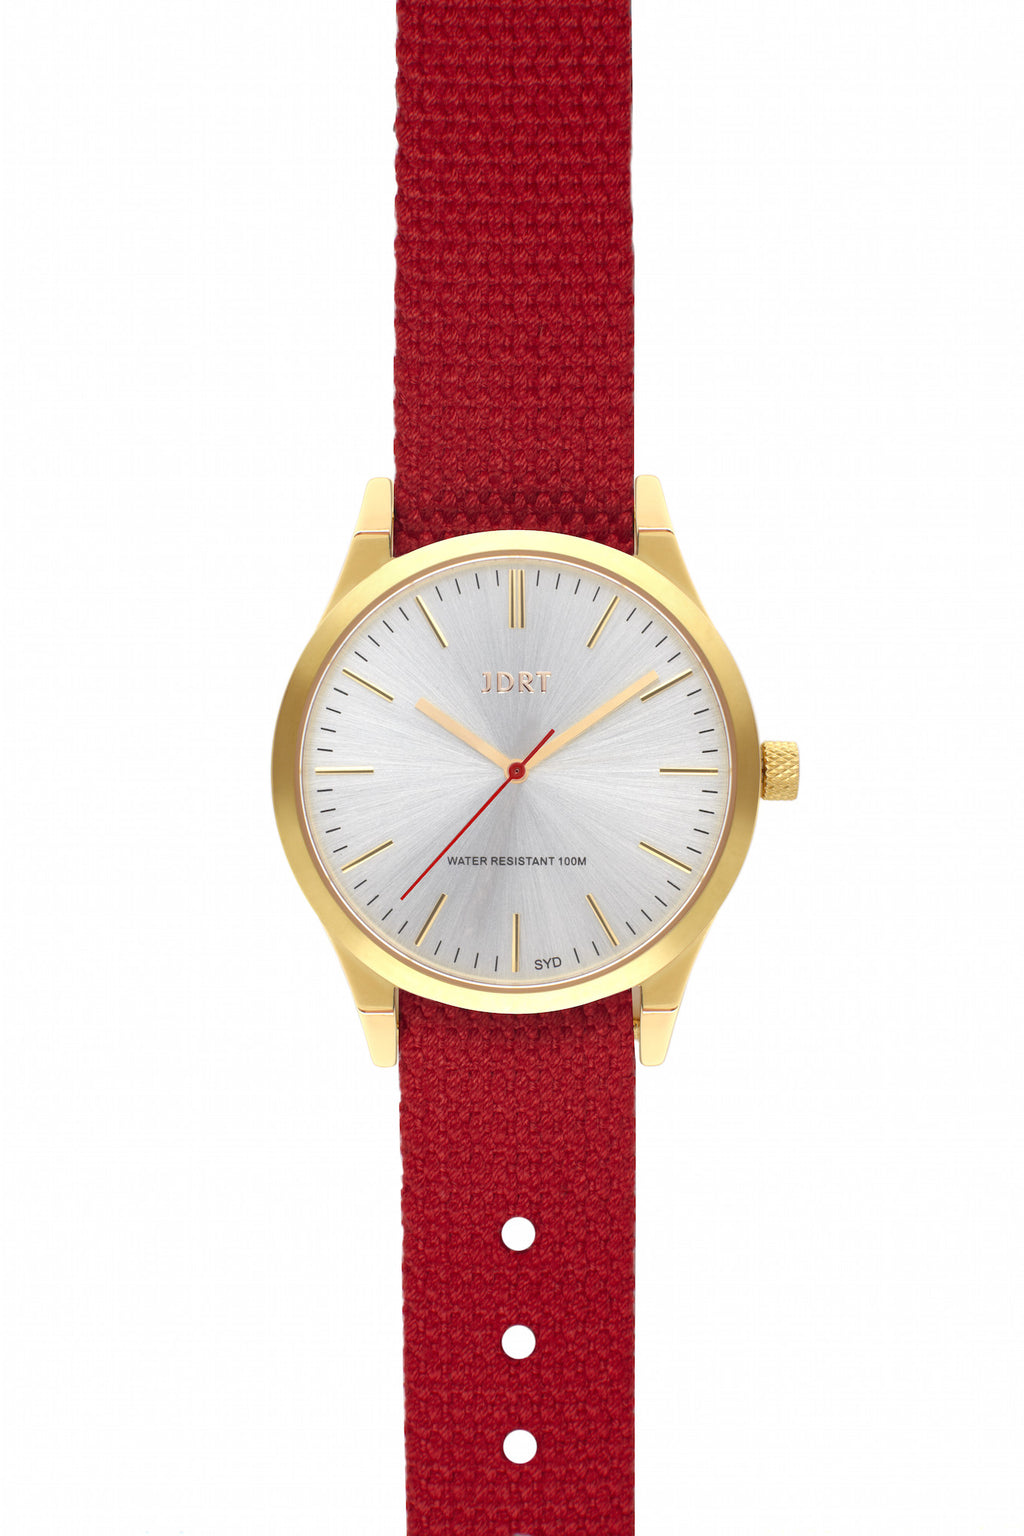 Brushed Silver Face with Chilli Canvas Watch Band